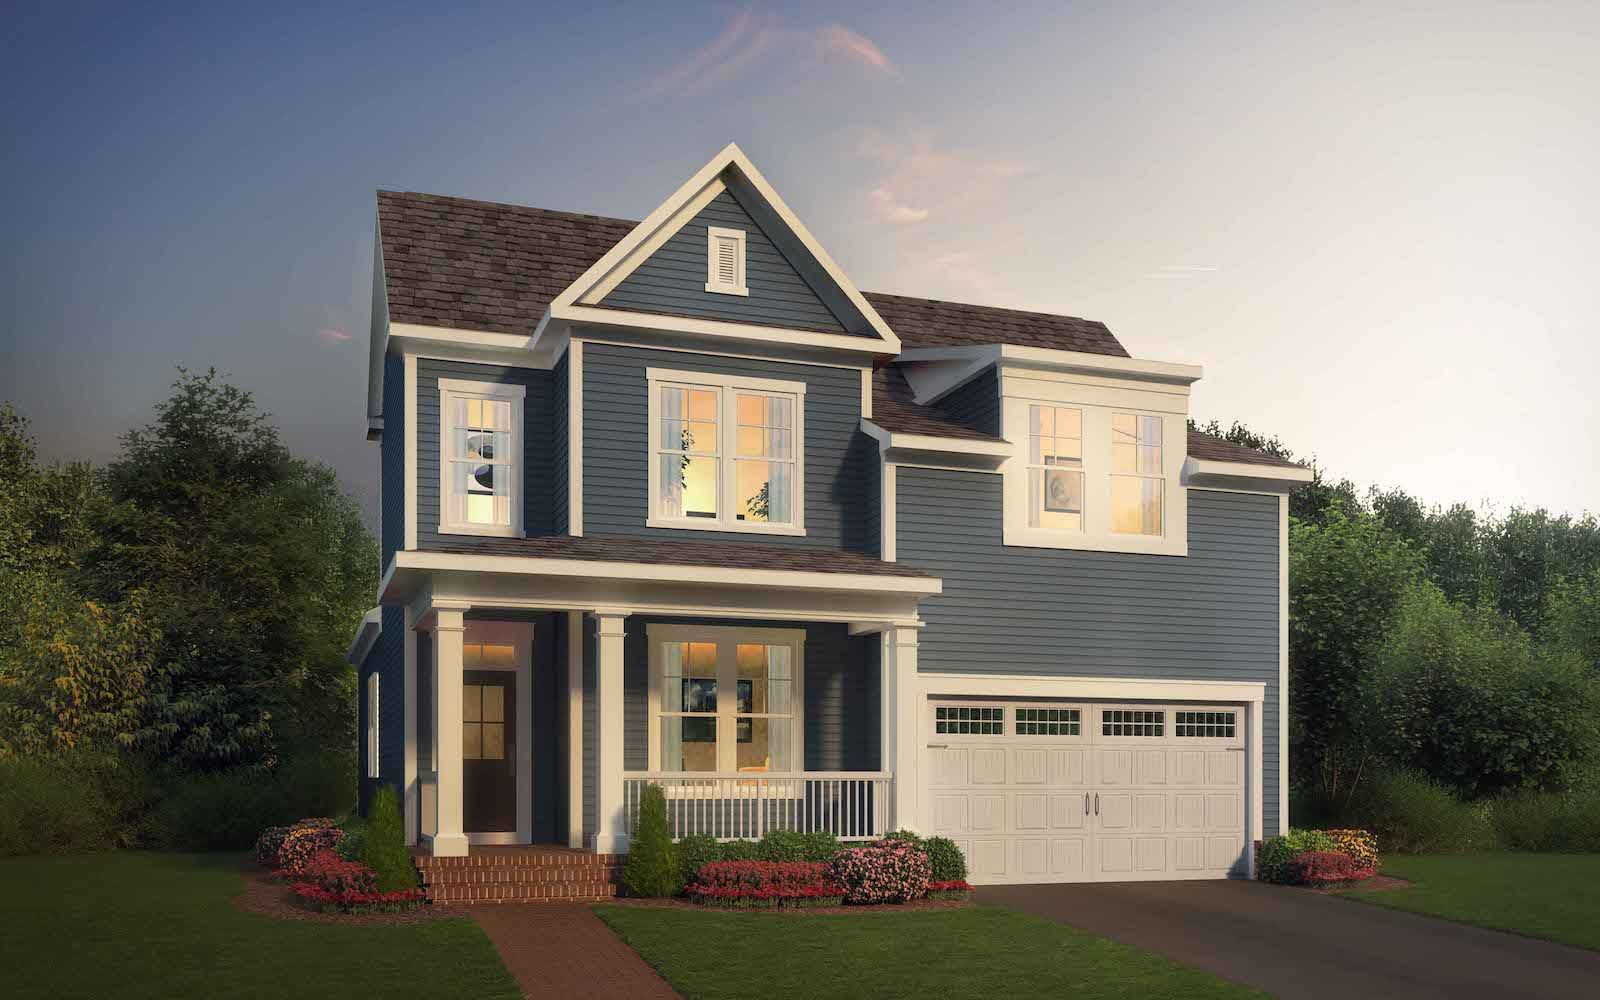 Exterior:Elevation 1 of the Torrington a home design by Brookfield Residential at West Shore Village at The Bluffs at Sleeter Lake.